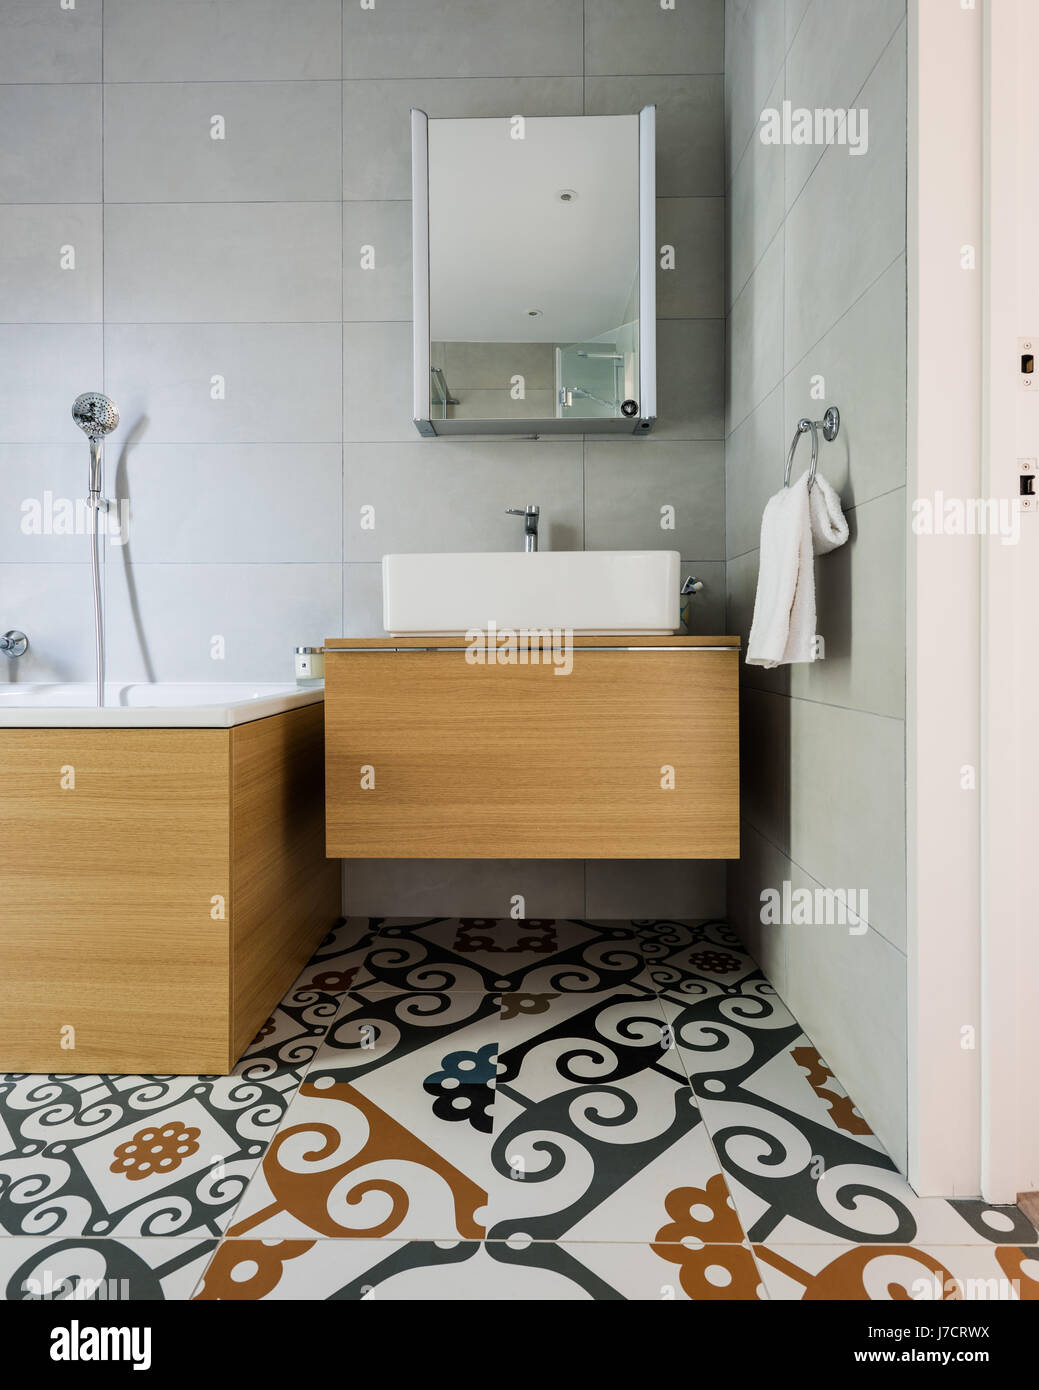 Wooden stand and bath surround with Majolica floor tiles - Stock Image